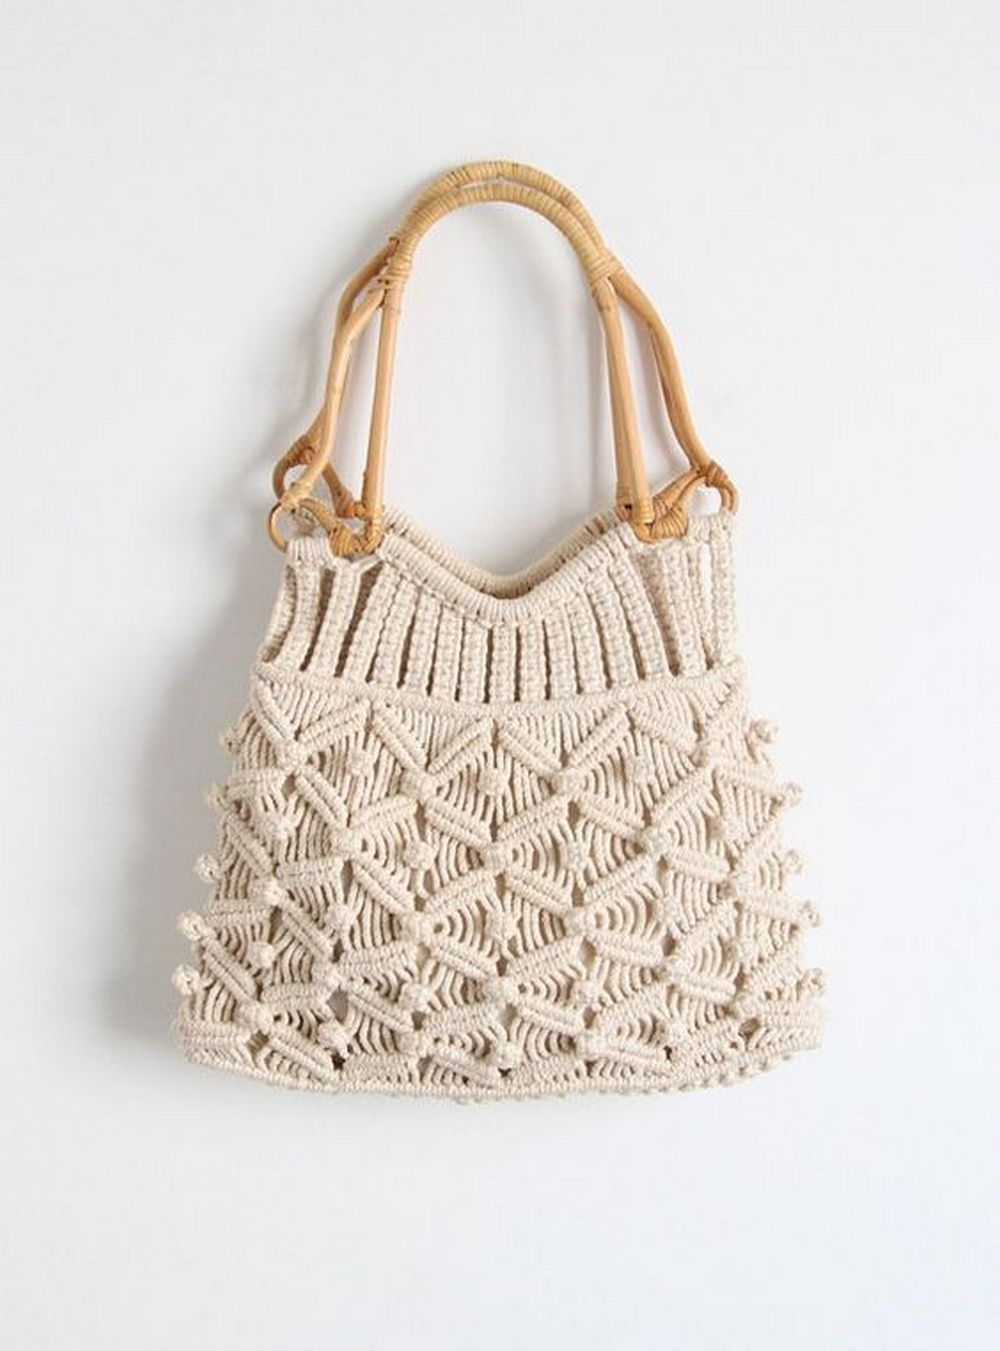 Diy Macrame Bag Craft Projects For Every Fan